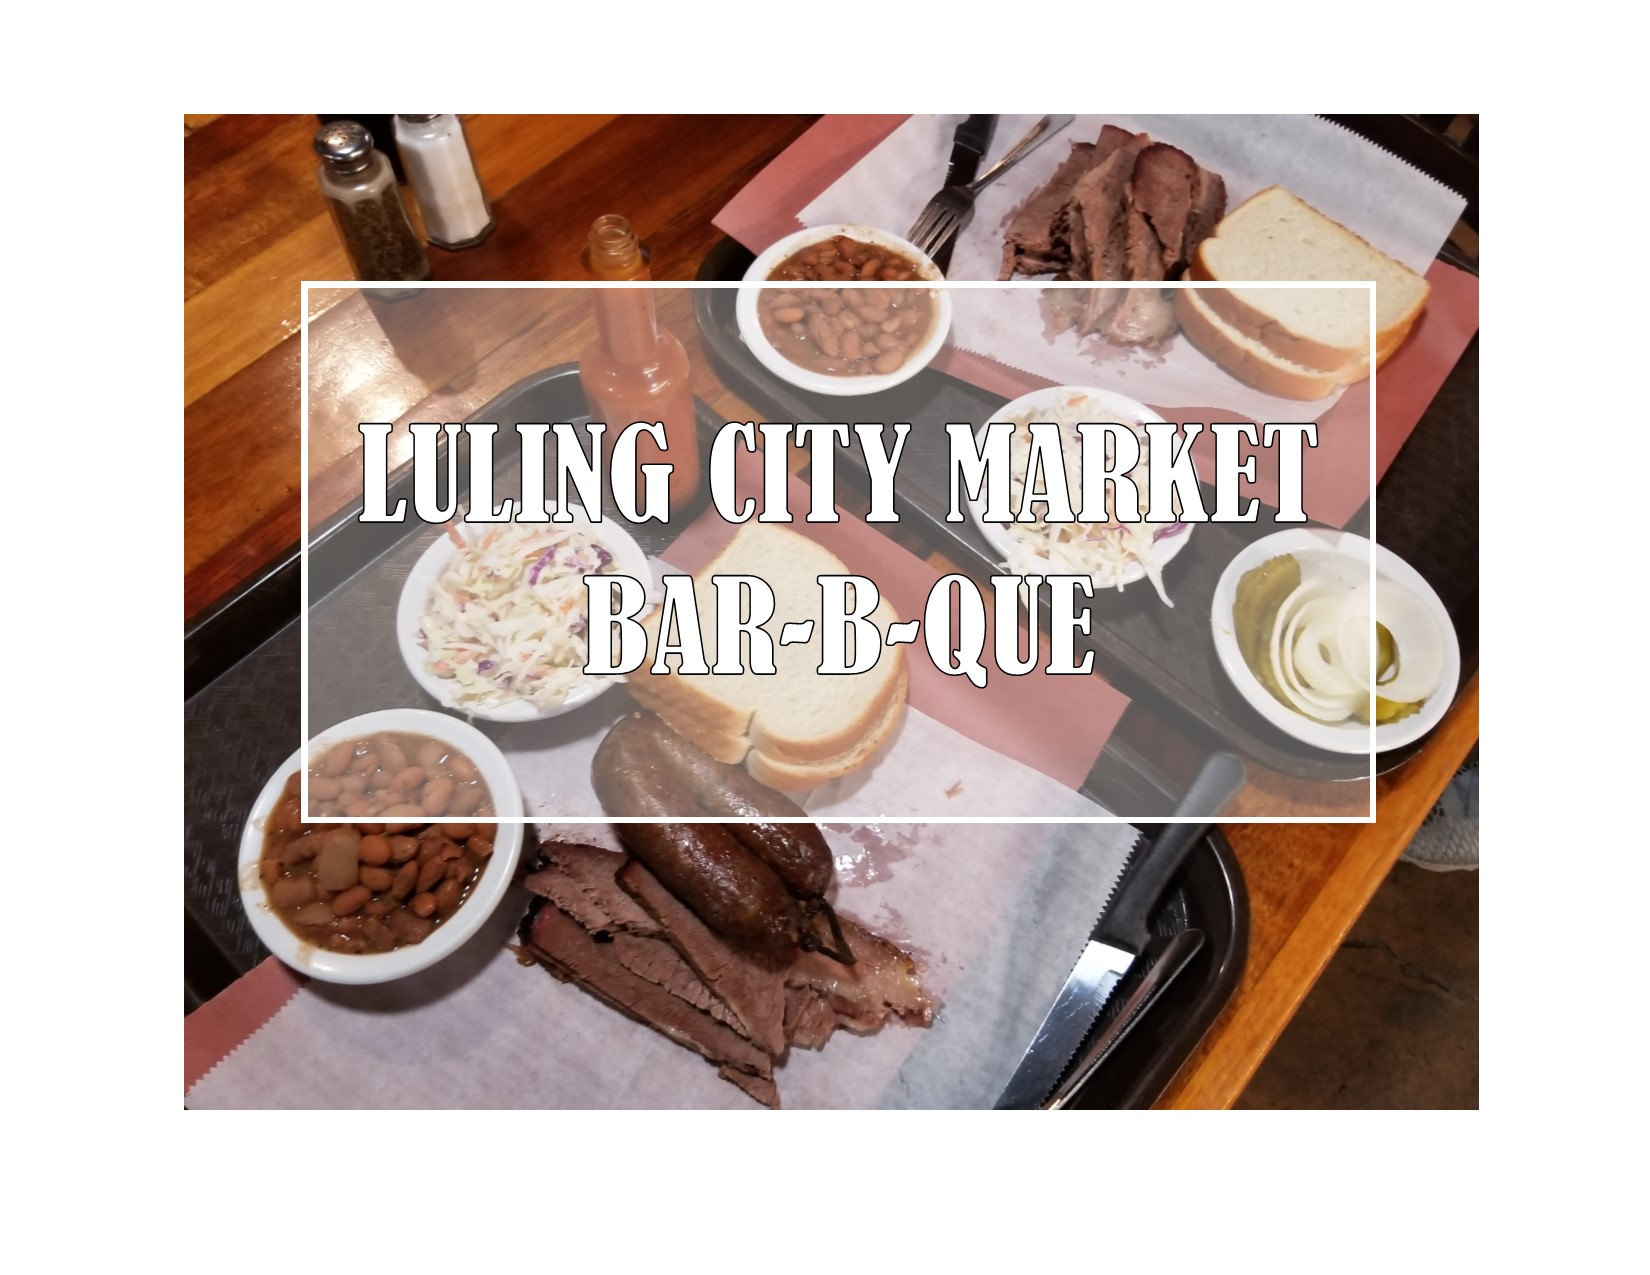 Luling City Market